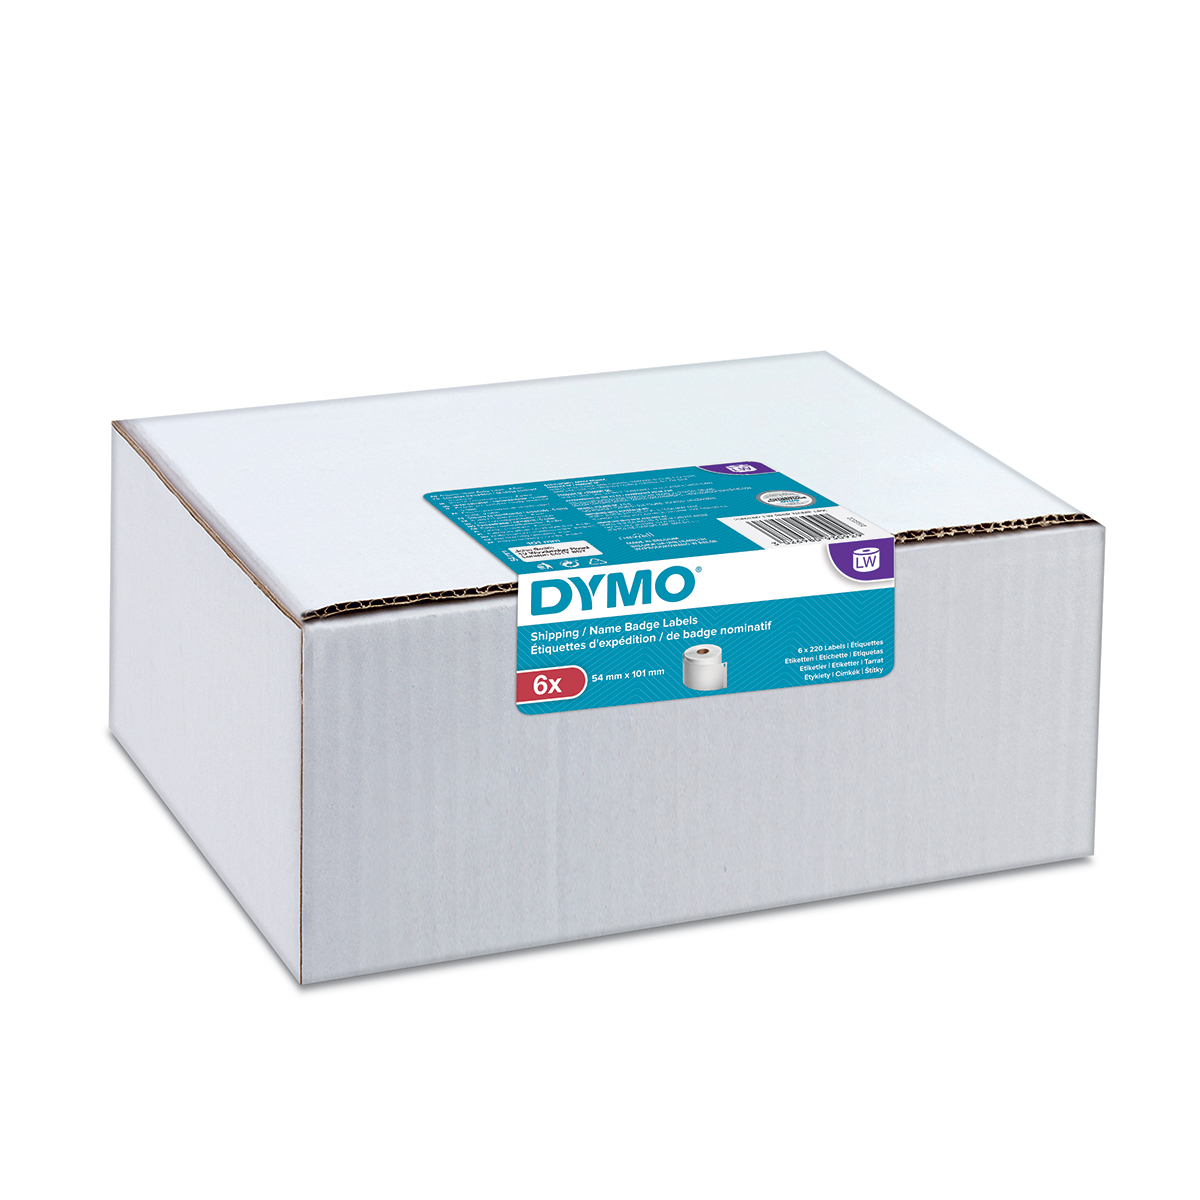 Dymo 2093092 LW Shipping Labels 54 x 101mm 6 pack